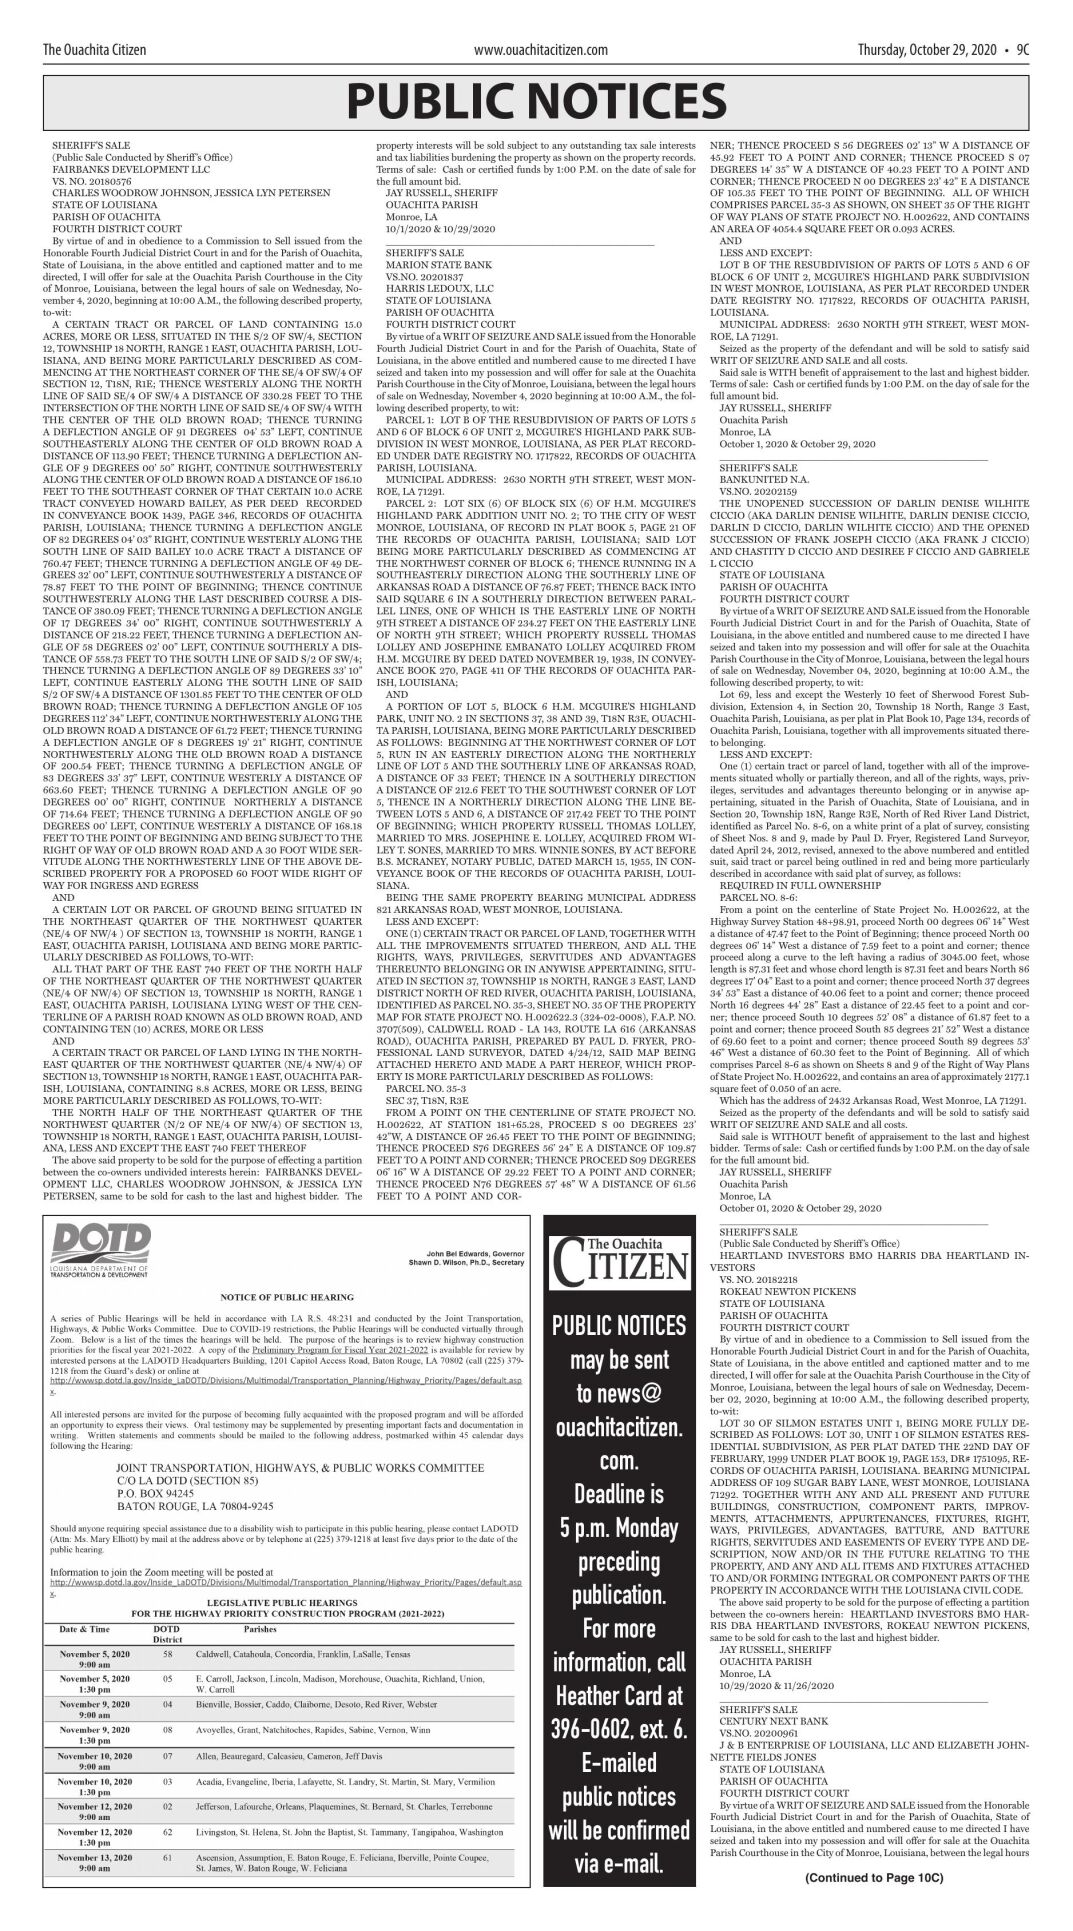 Oct. 29, 2020 Public Notices, click to download pages